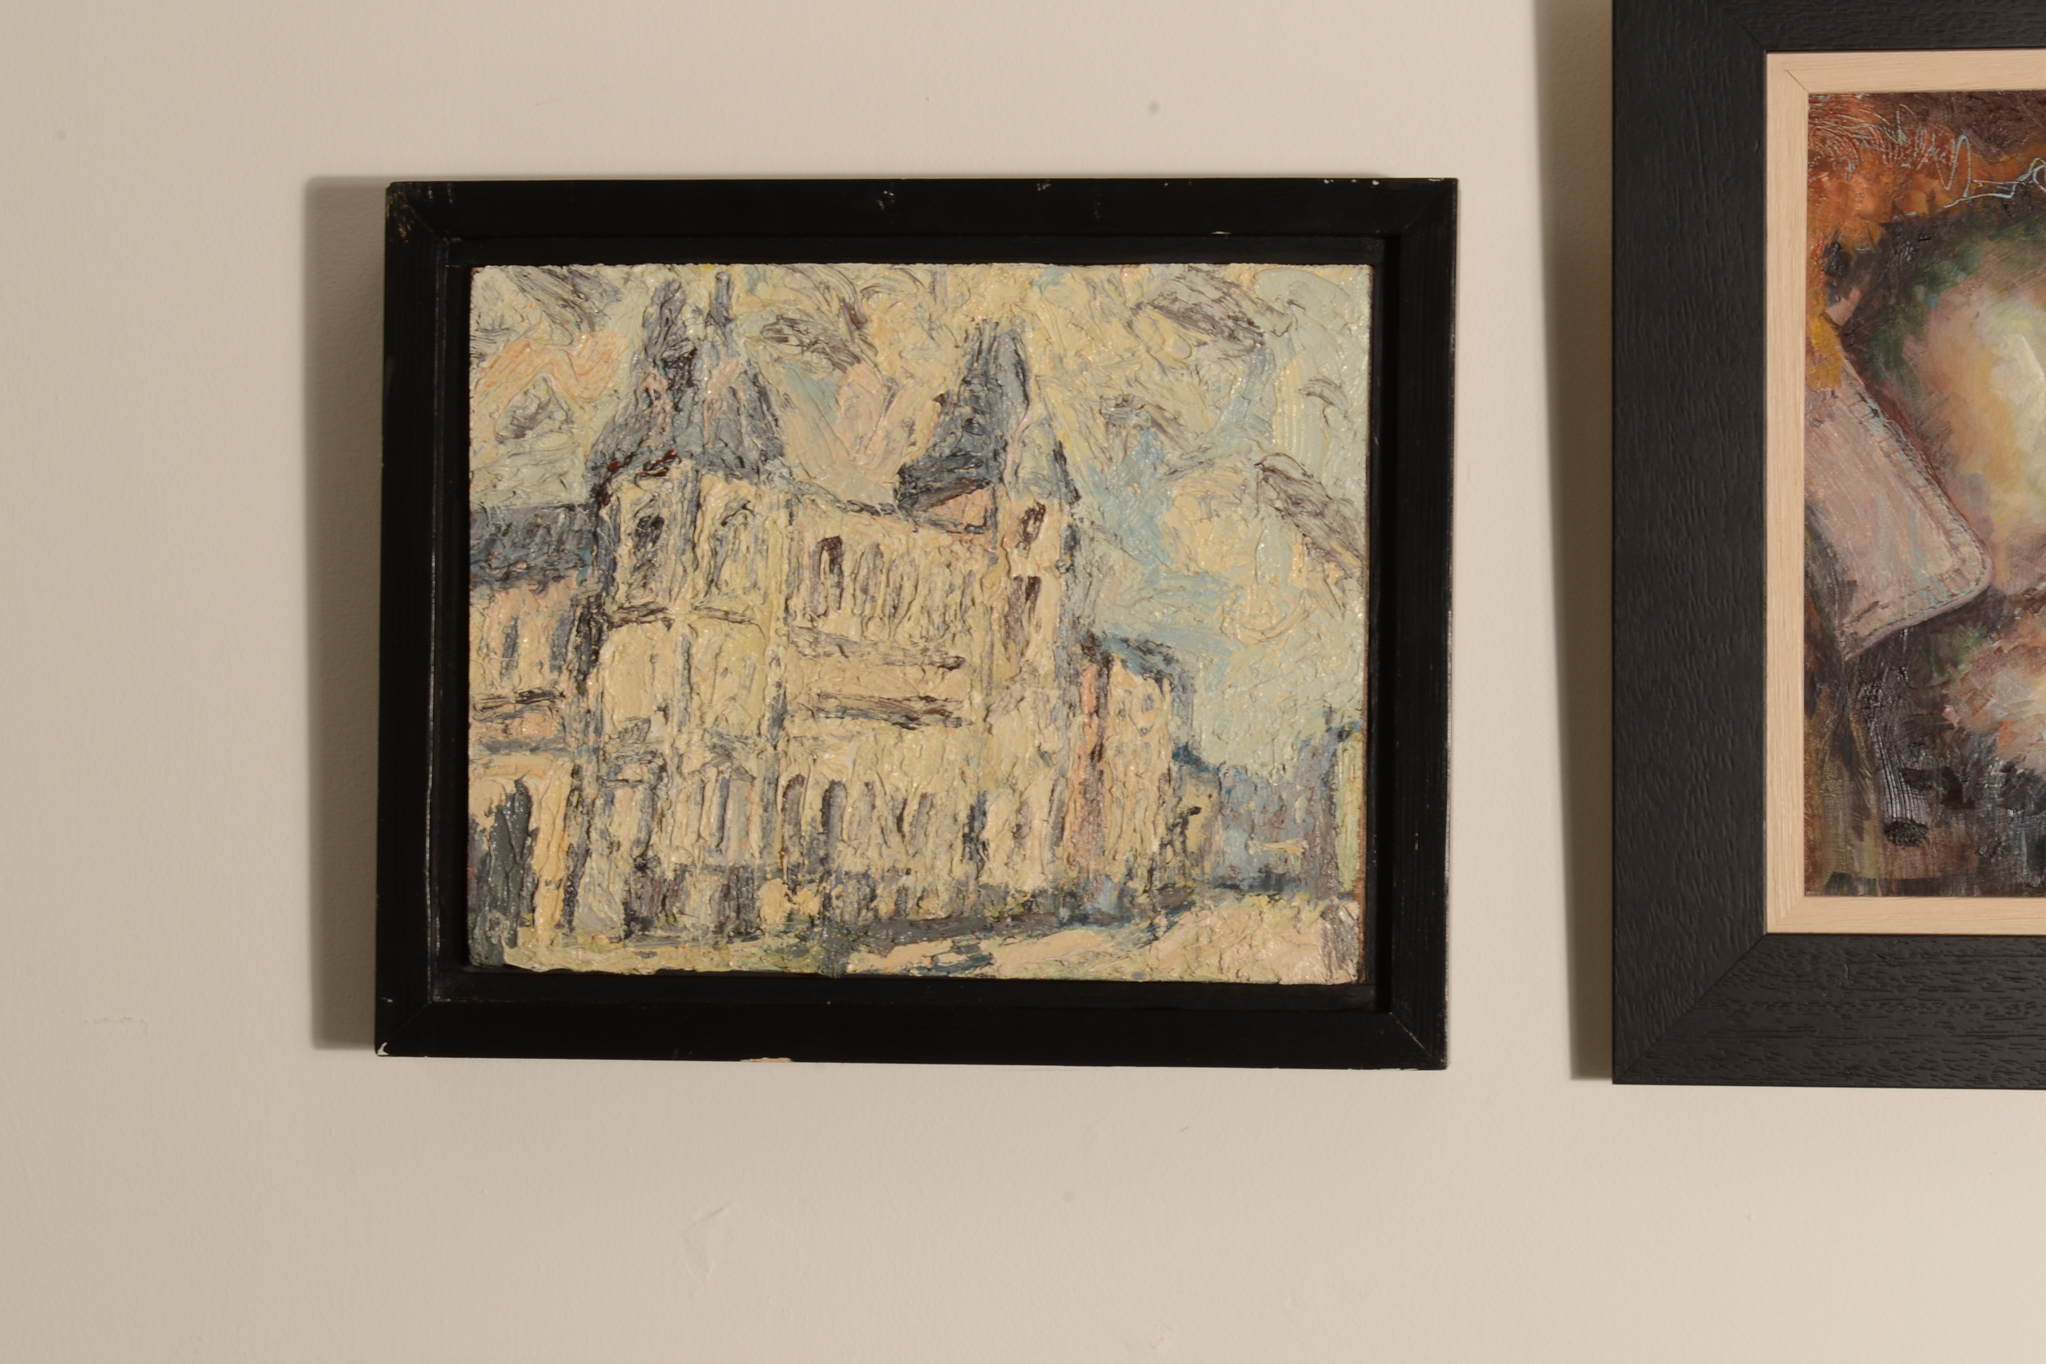 Lot 27 - 3 oils on board by Northern artist Barry De More